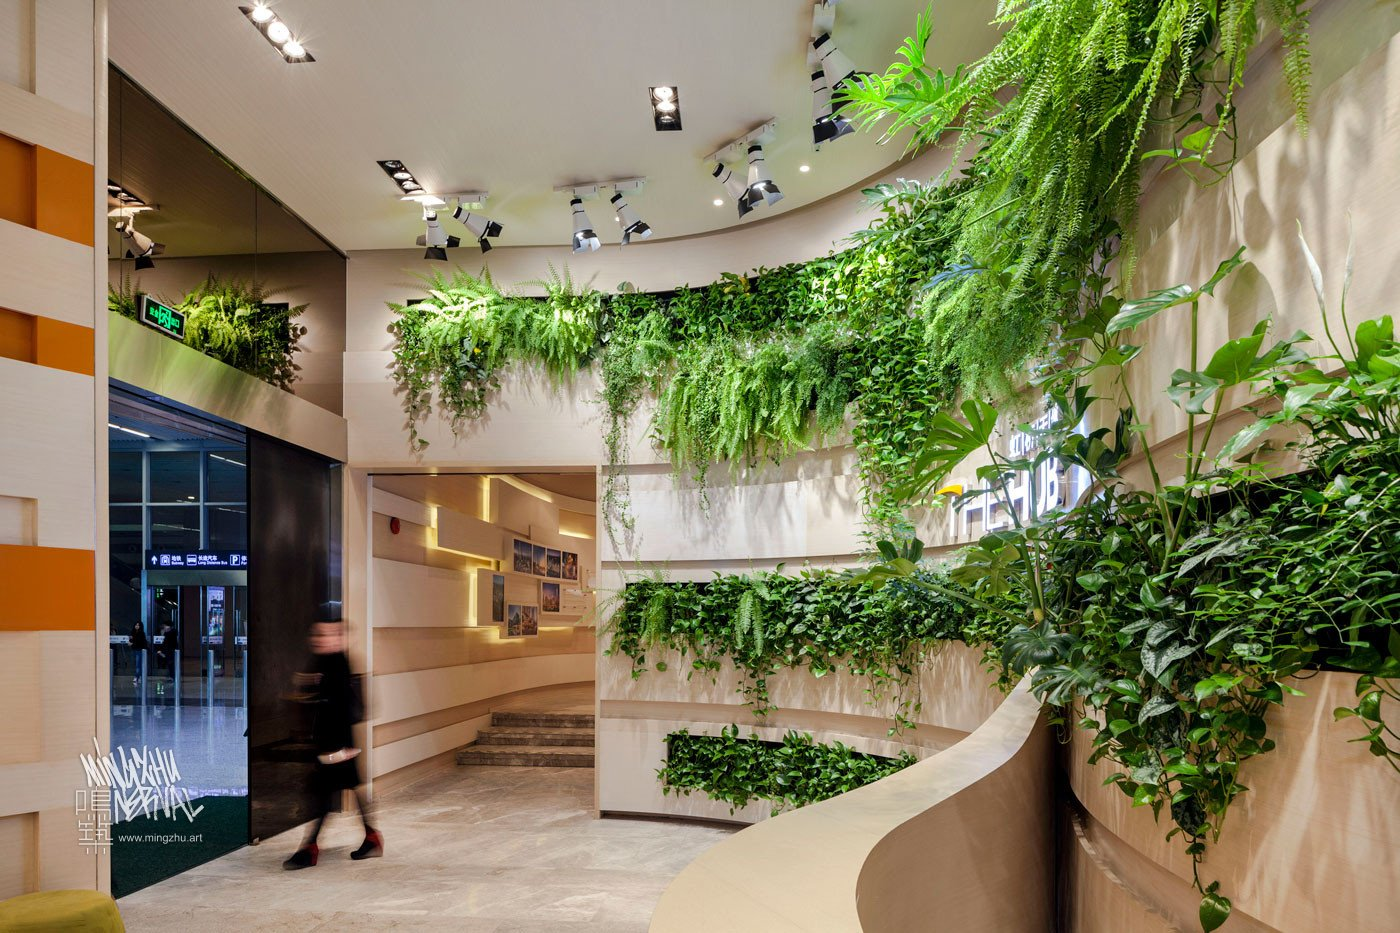 Mingzhu Nerval vertical living wall experts created the green living wall garden design at the Shui-On Showroom, The Hub in Shanghai, 2012